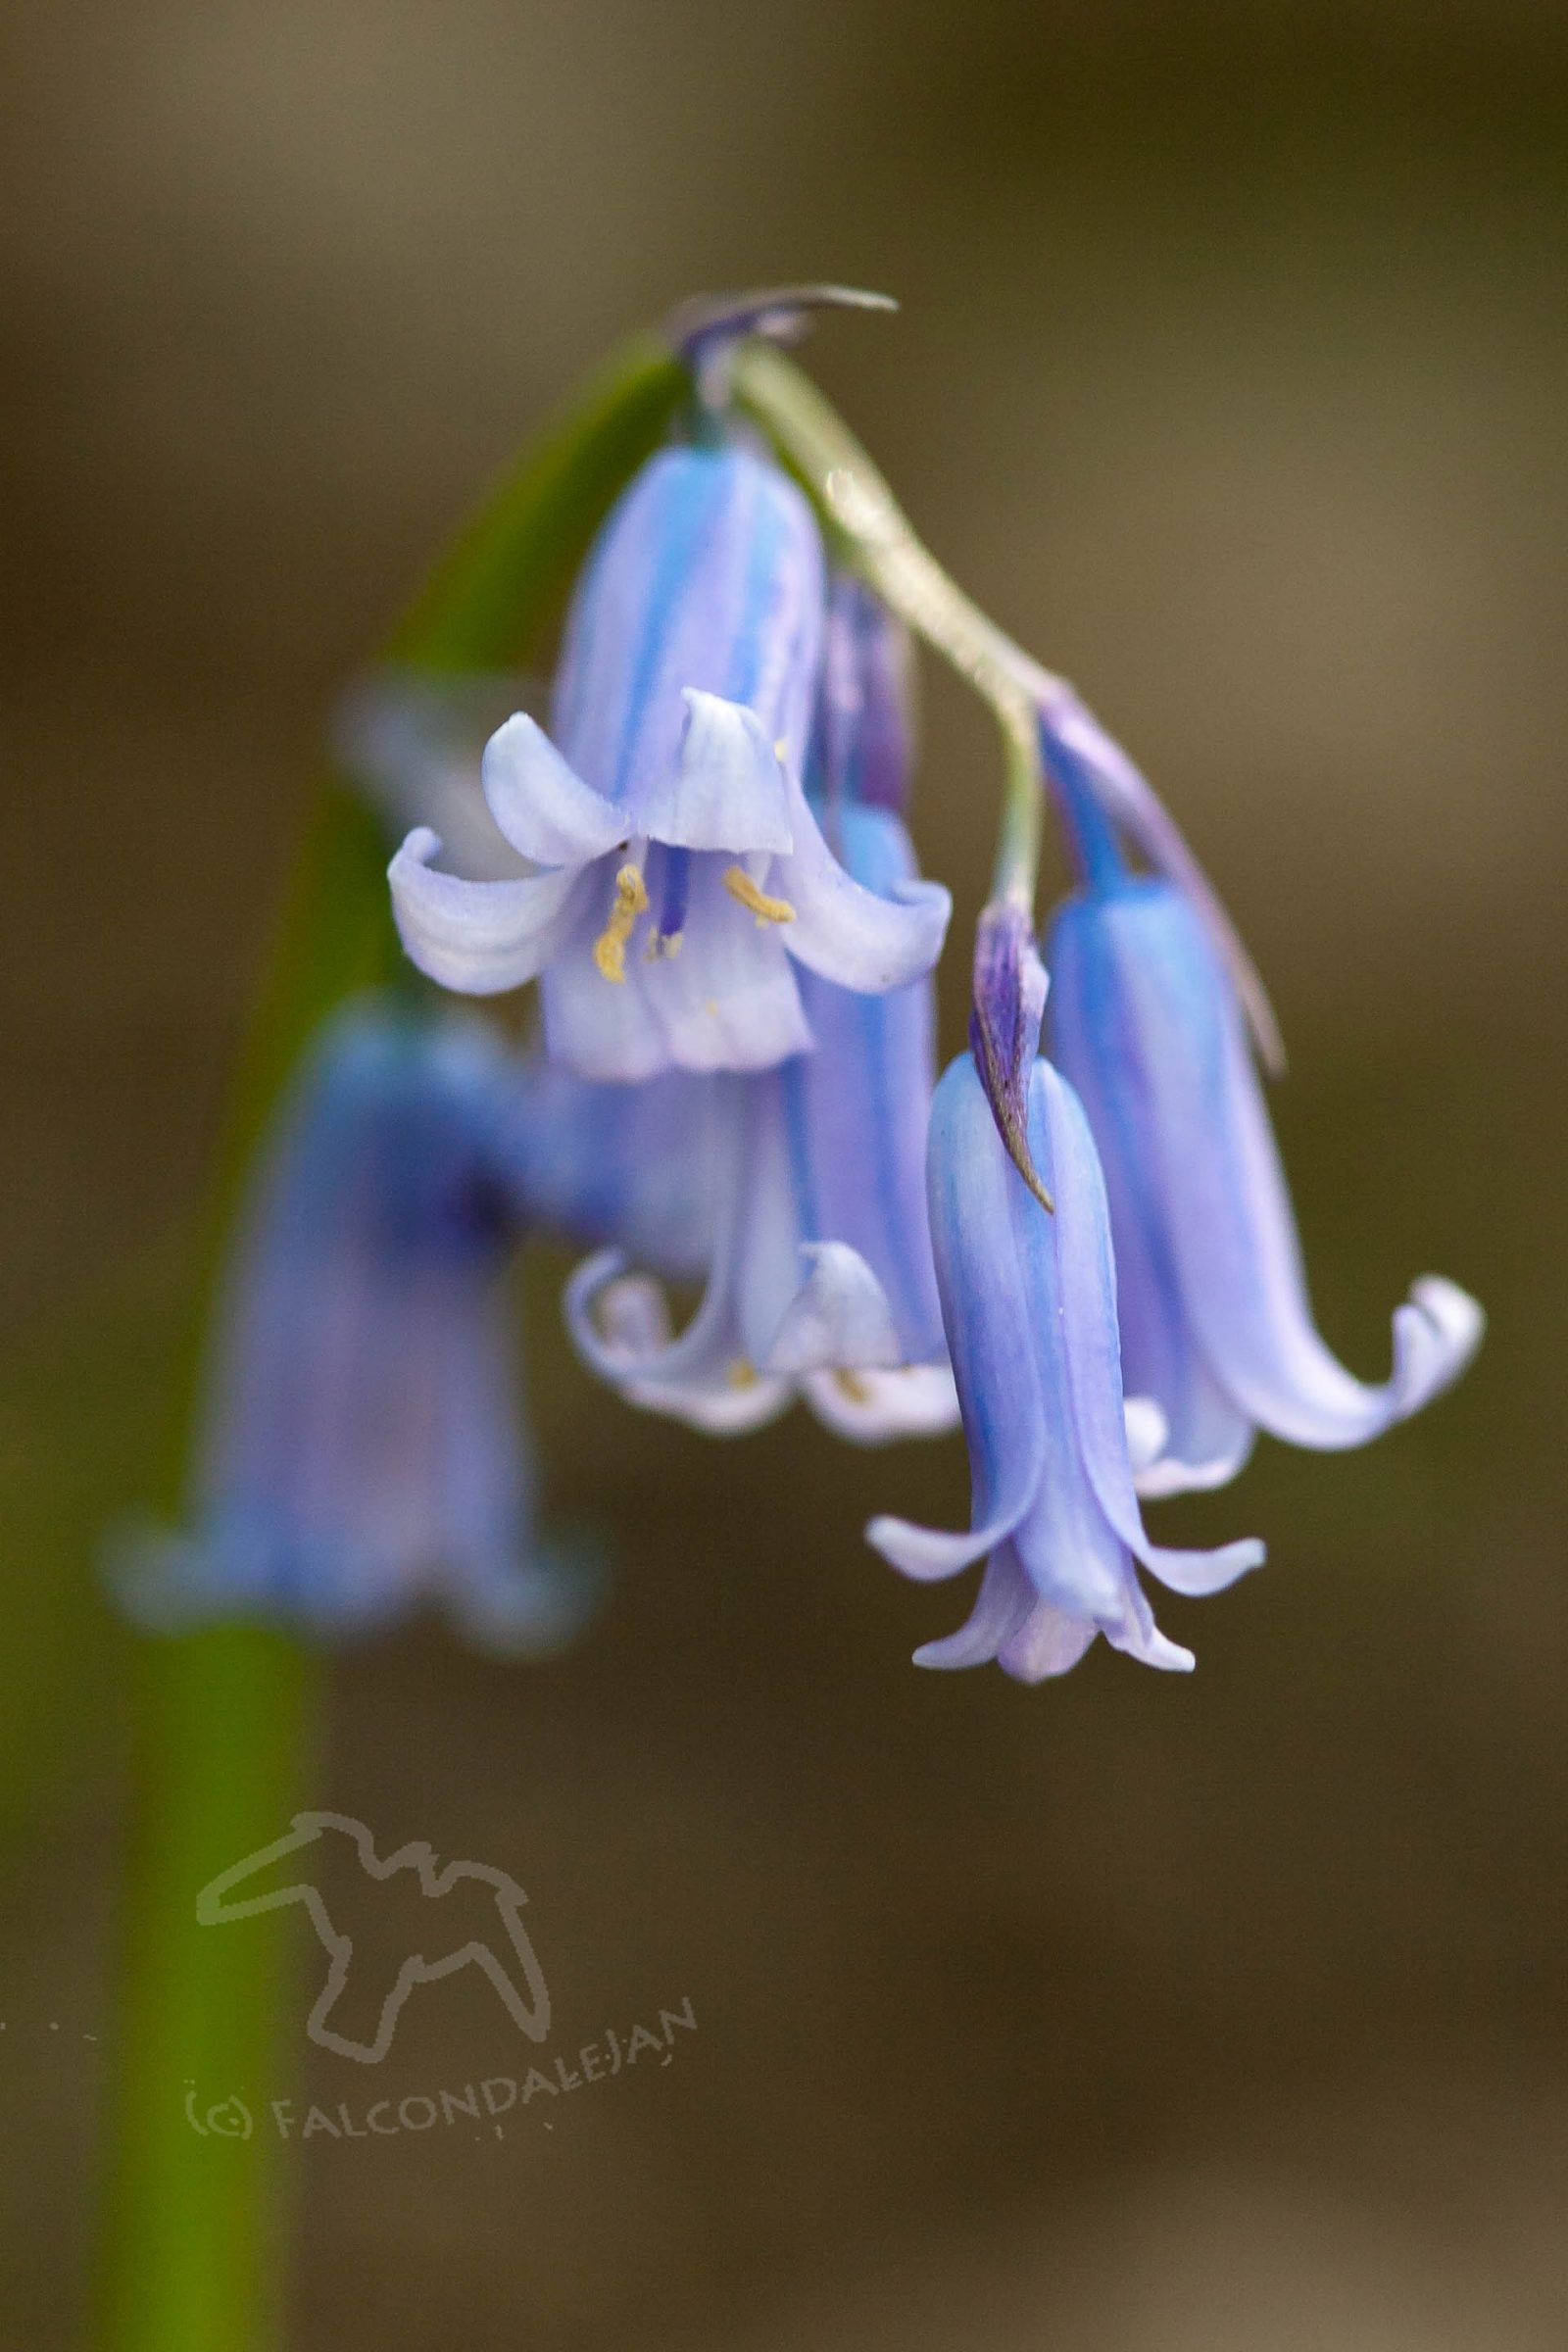 Three steps taking to better flower photos on Falcondale Life blog. This bluebell stands out on a dark background. Follow these simple tips for better photographs of flowers. How to get the depth of field and contrast right in an image.